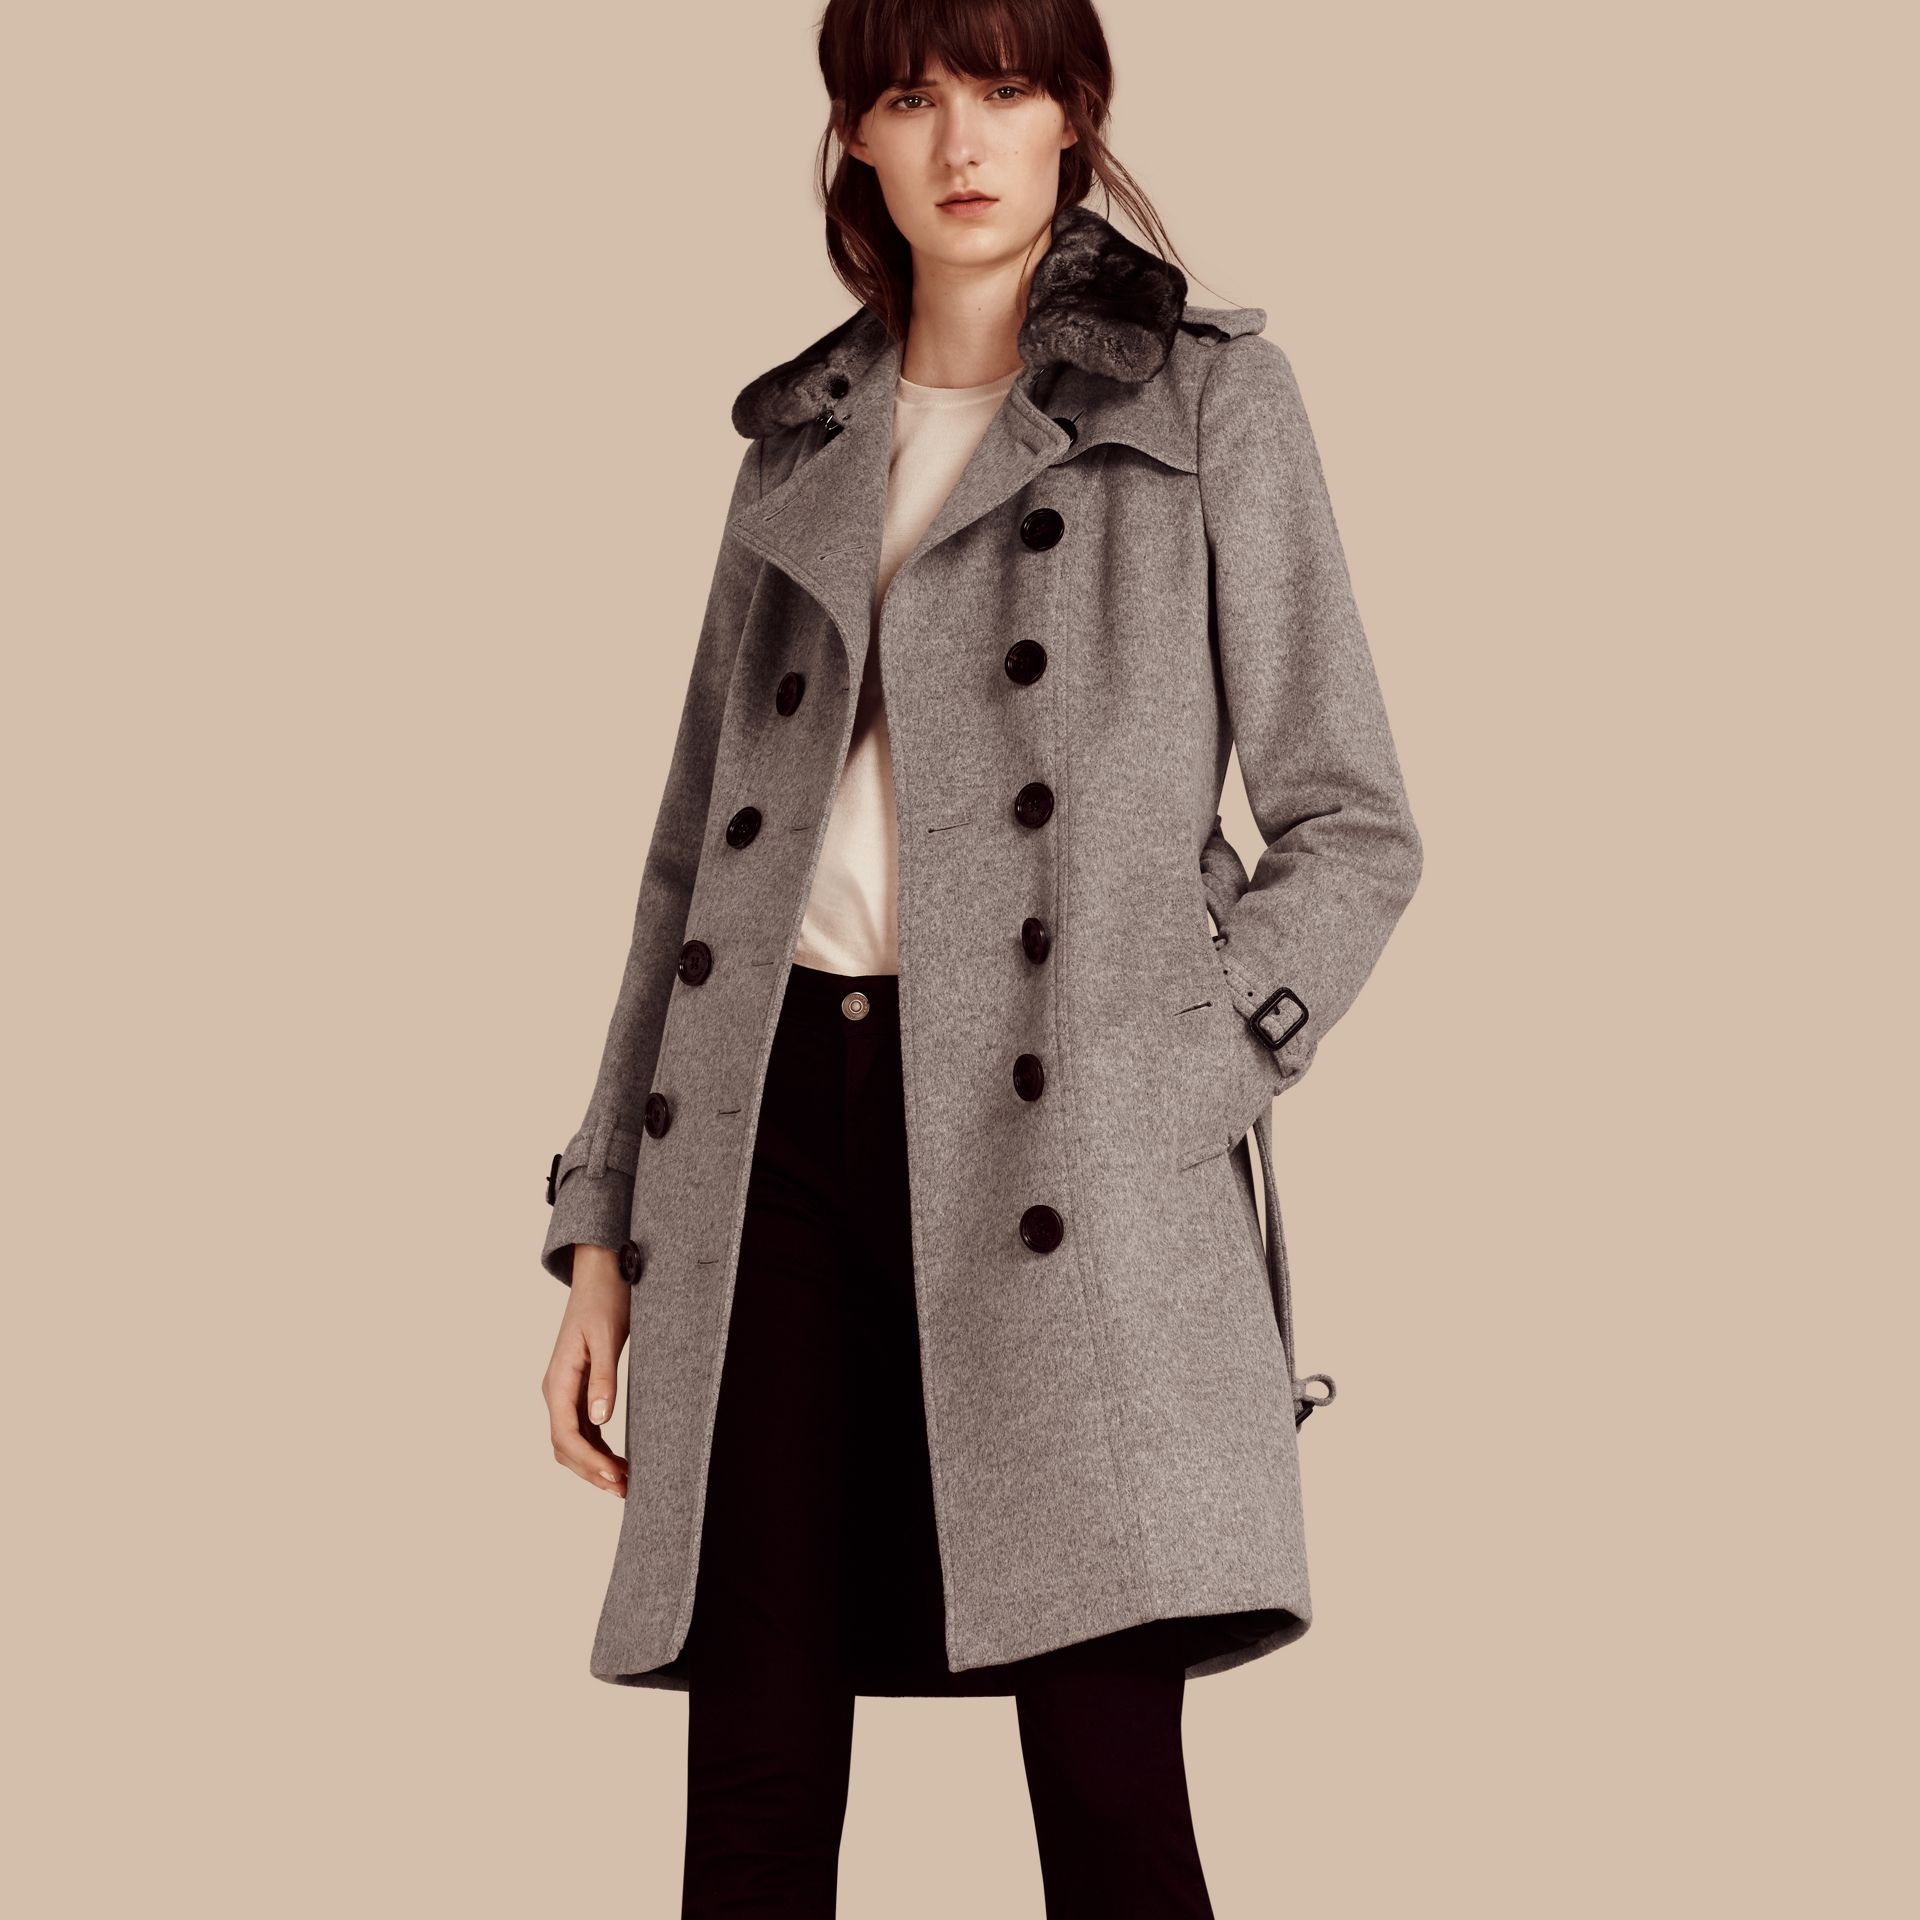 Pale grey melange Wool Cashmere Trench Coat with Fur Collar - gallery image 1